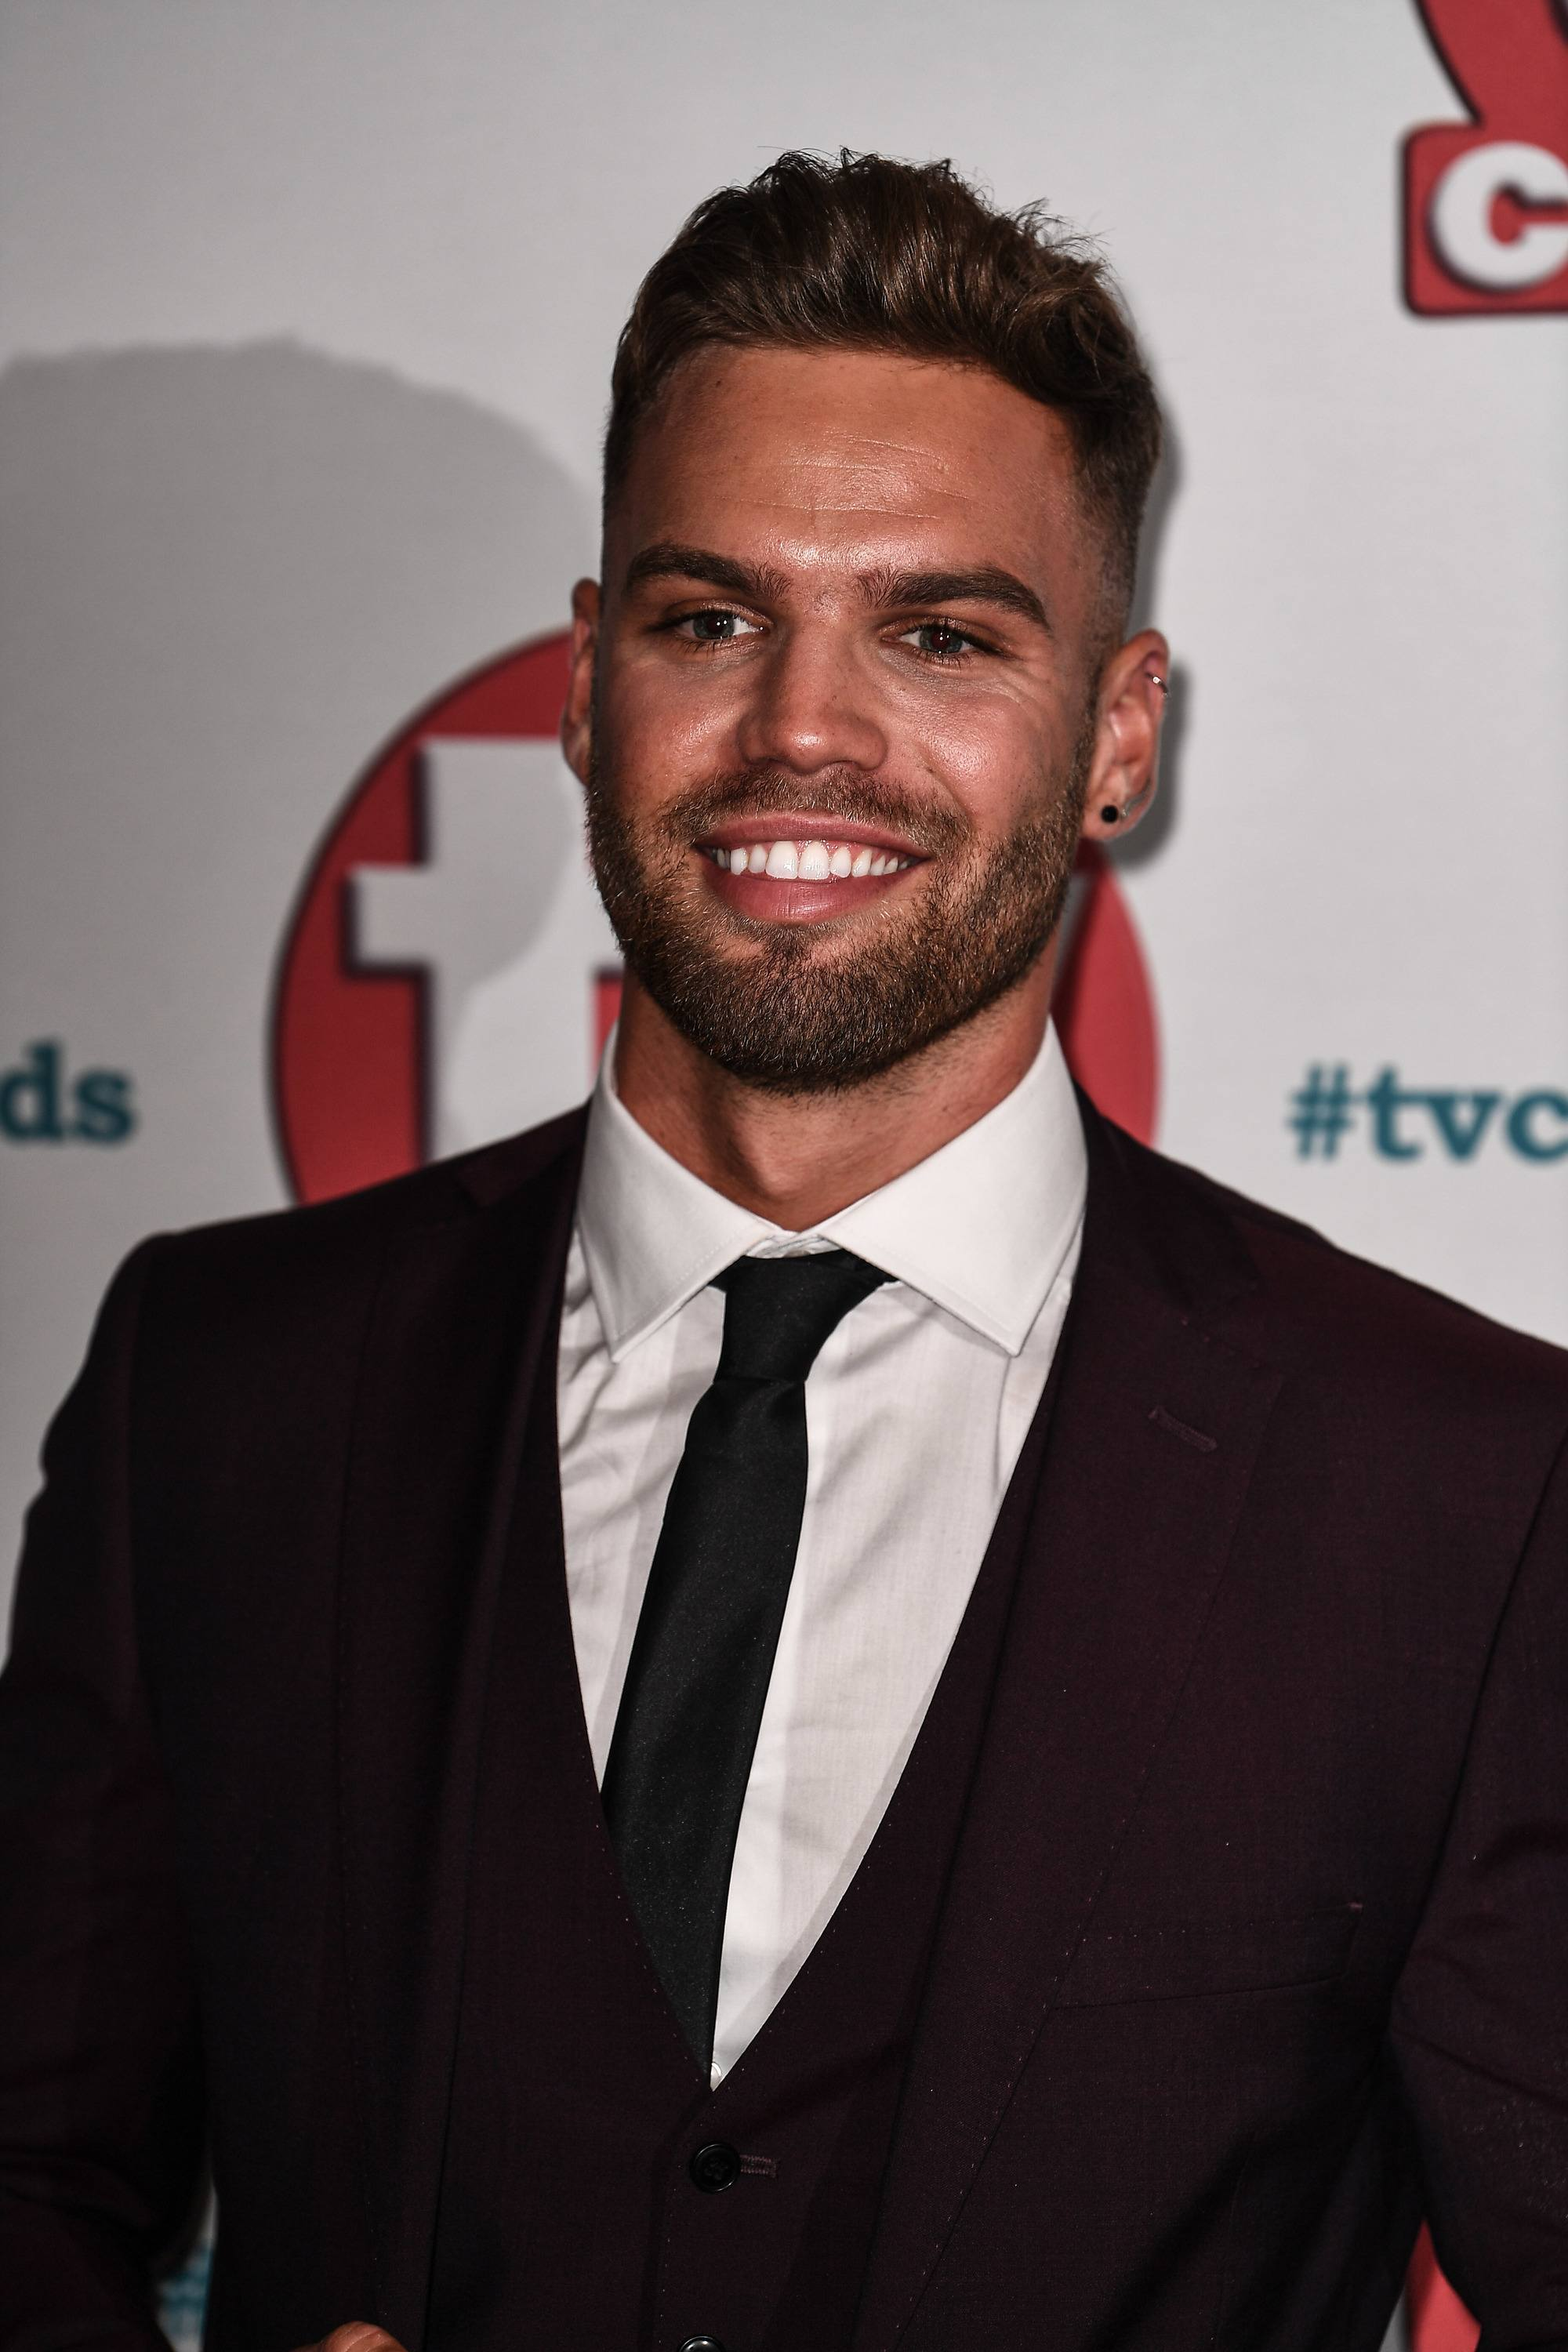 Love Island's Dominic Lever on the tv choice awards red carpet with a spiked up quiff